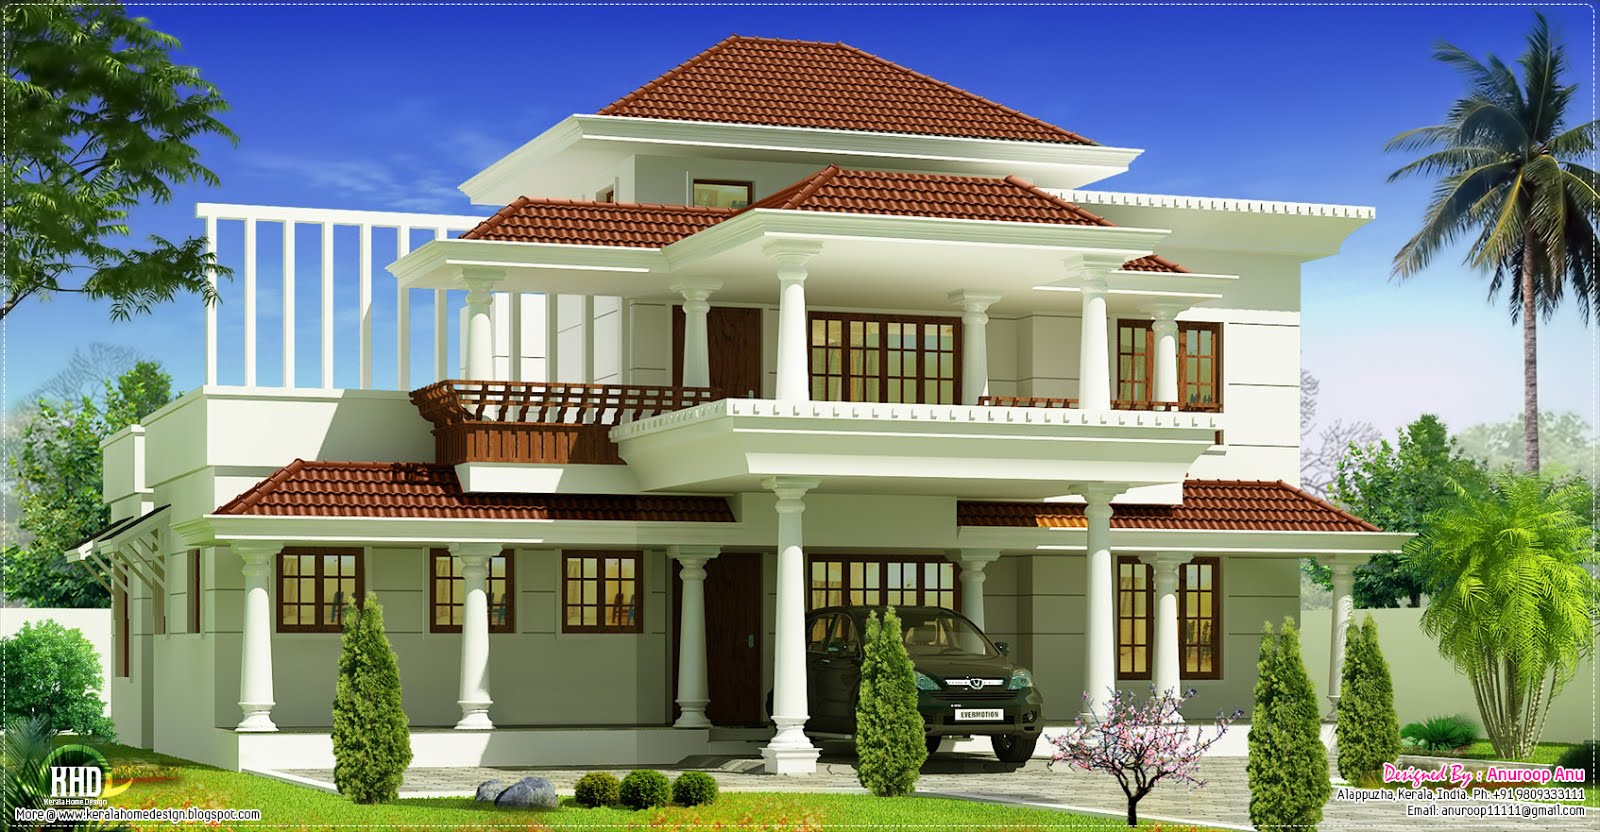 Kerala house models houses plans designs for Kerala house models photos